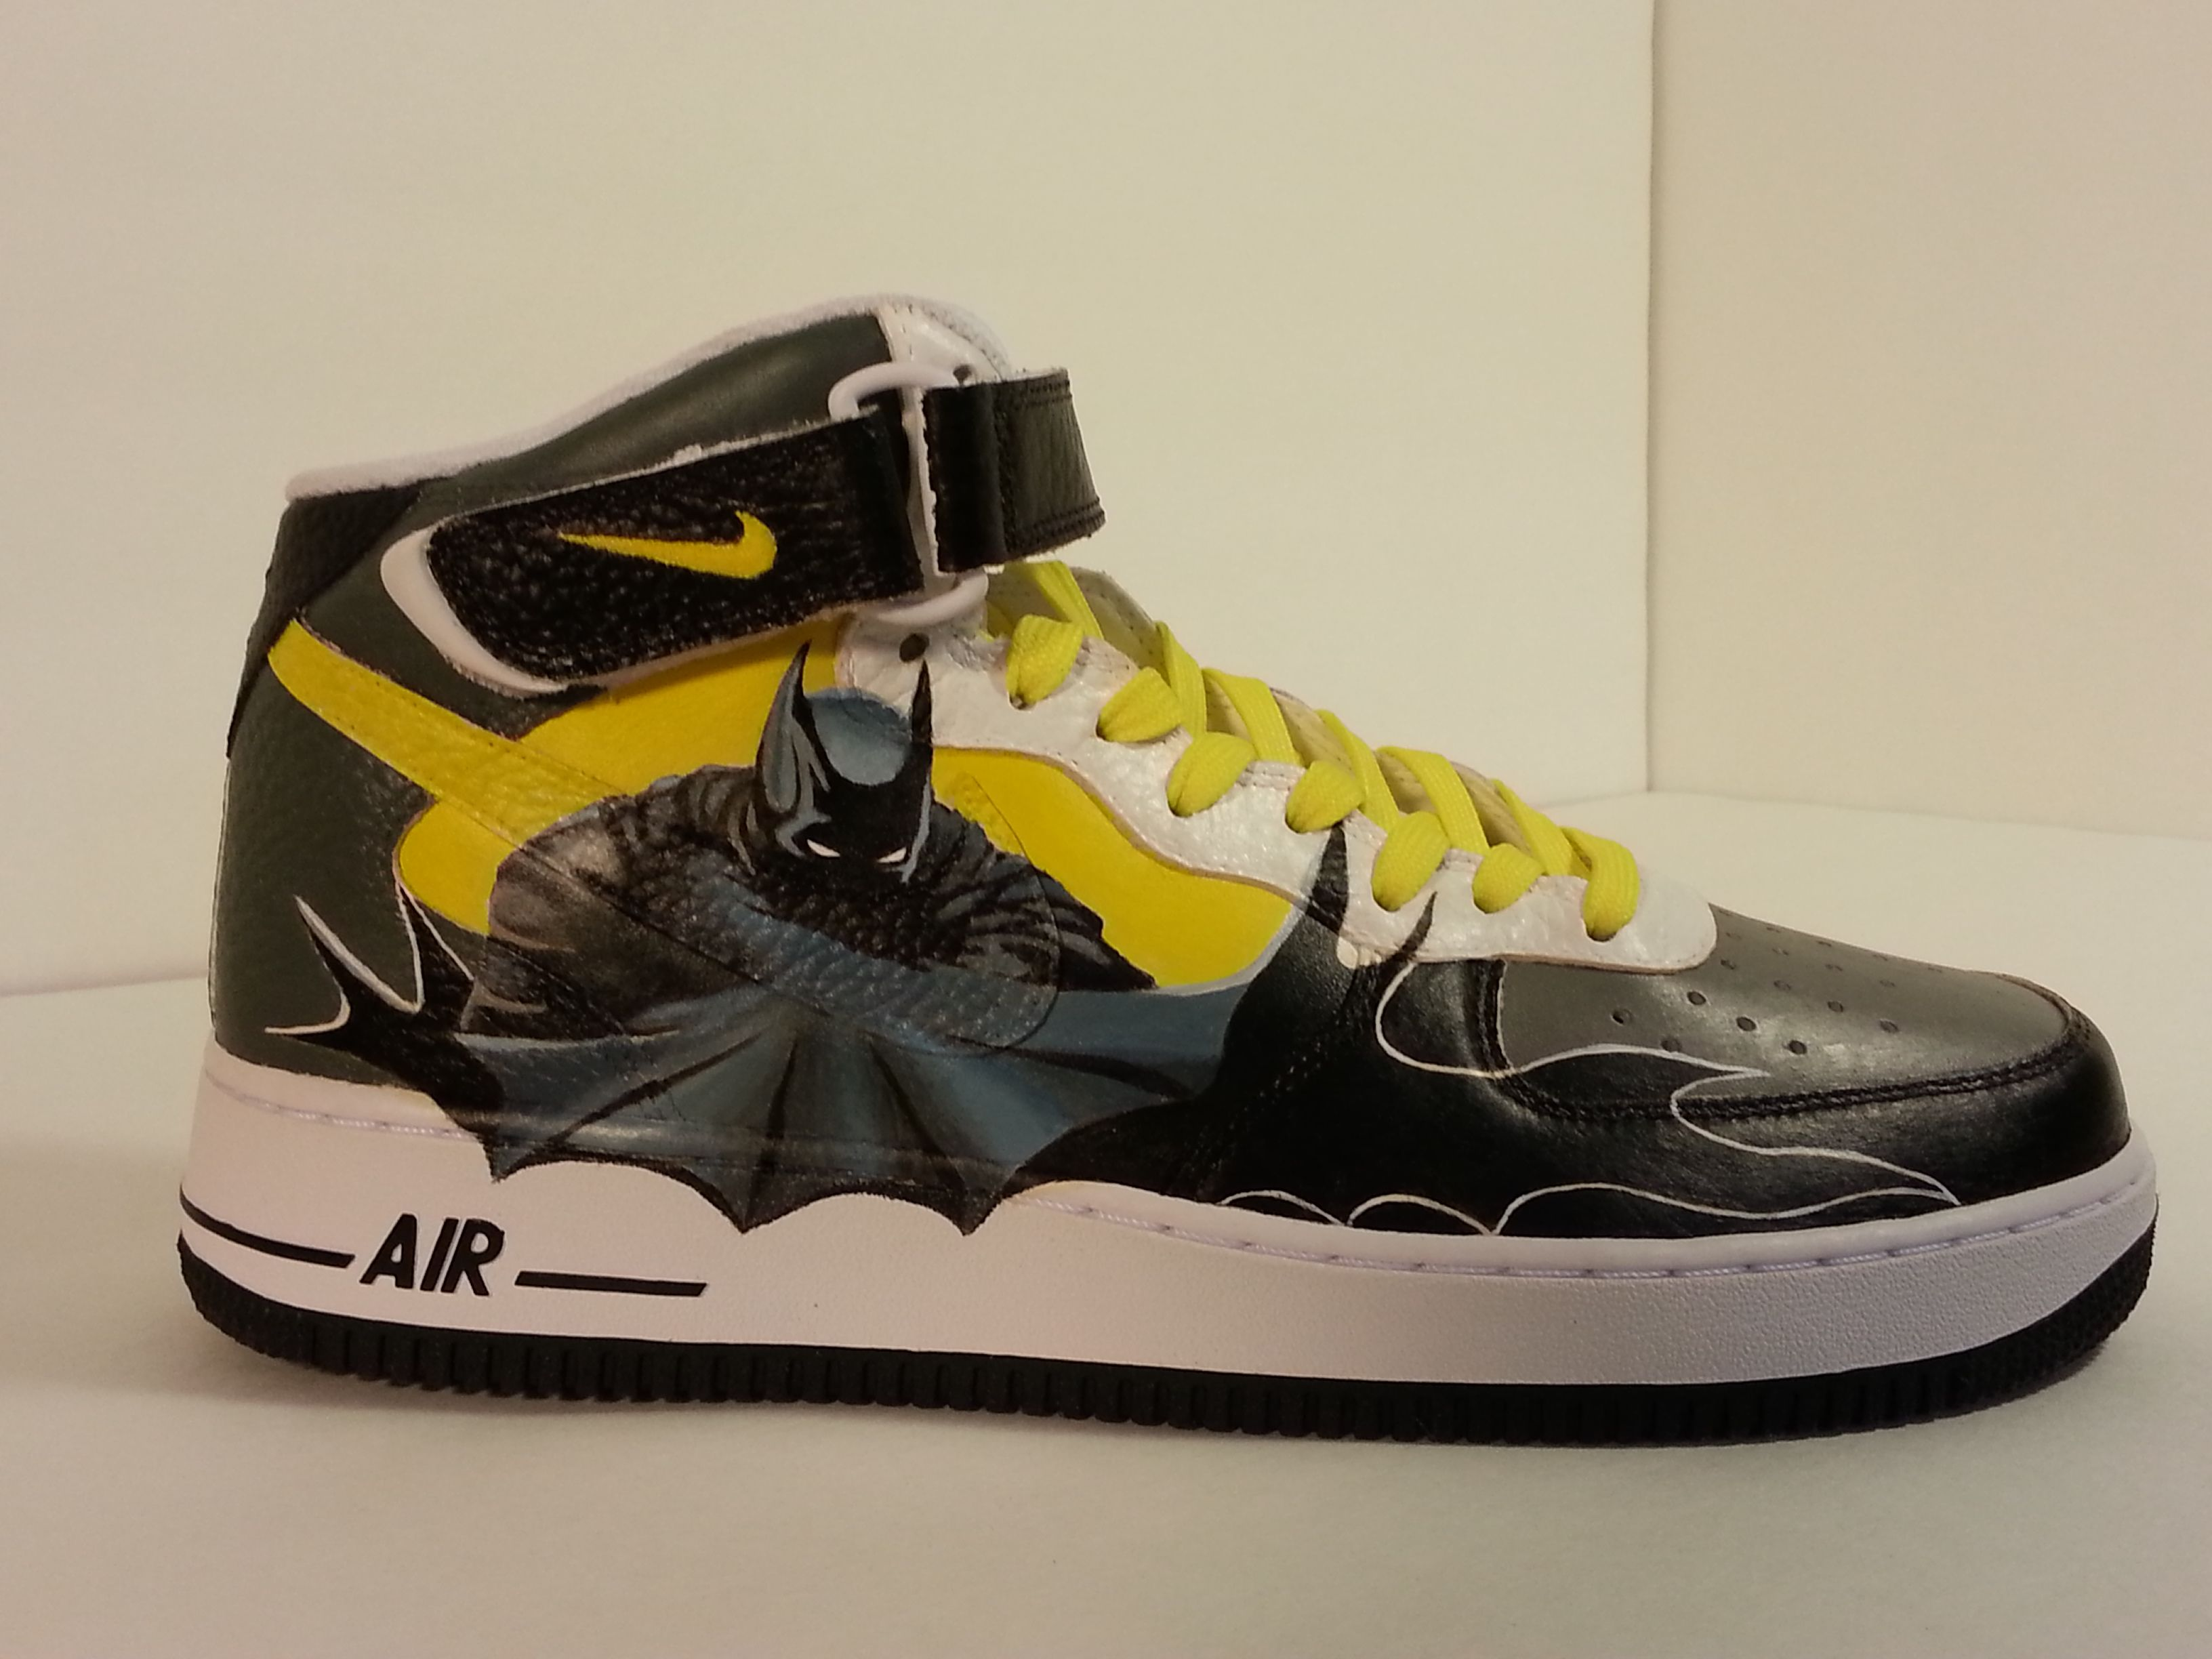 Wolverine Air Force Ones  http://www.etsy.com/listing/119315874/custom-painted-wolverine-shoes ?ref=sr_gallery_5_search_query=custom+painted+wolve…